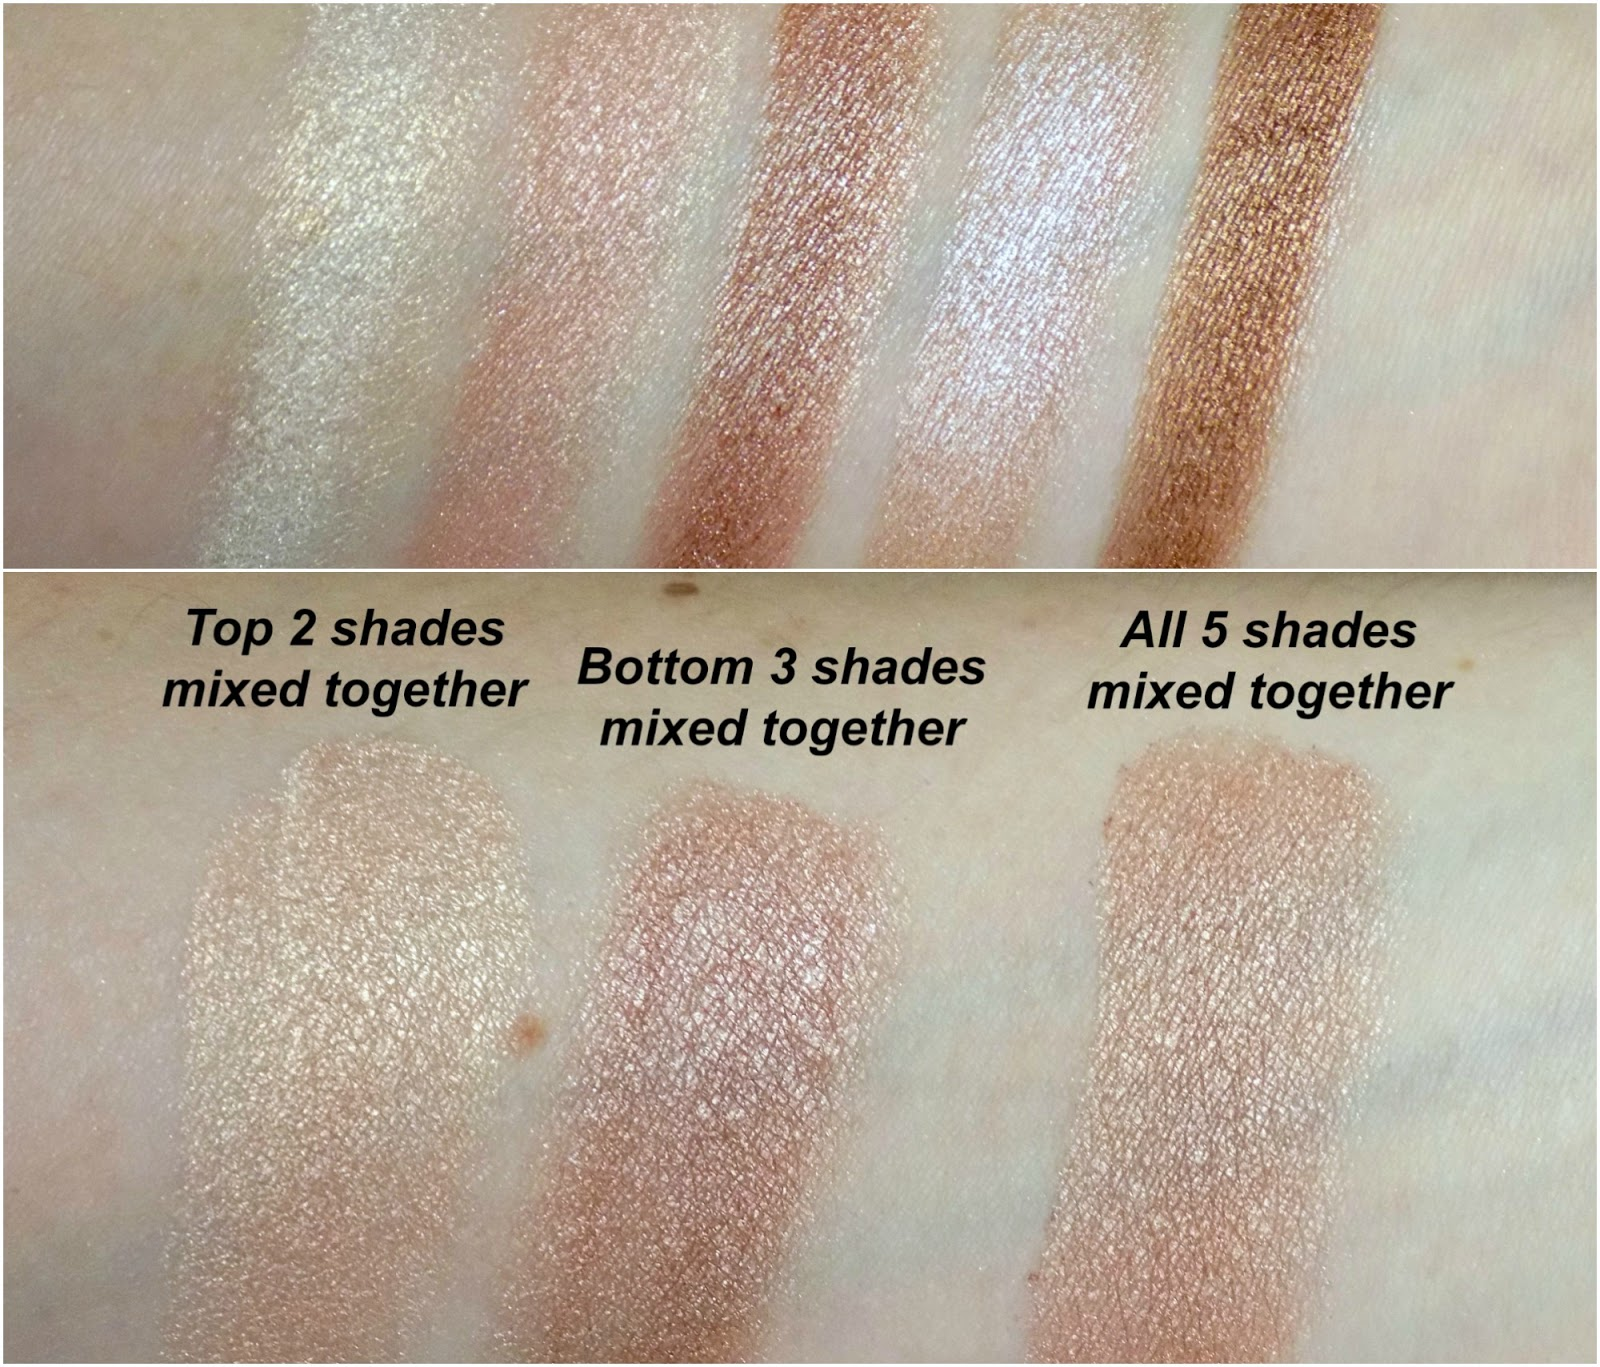 Makeup Revolution Shimmer Brick in Radiant swatches